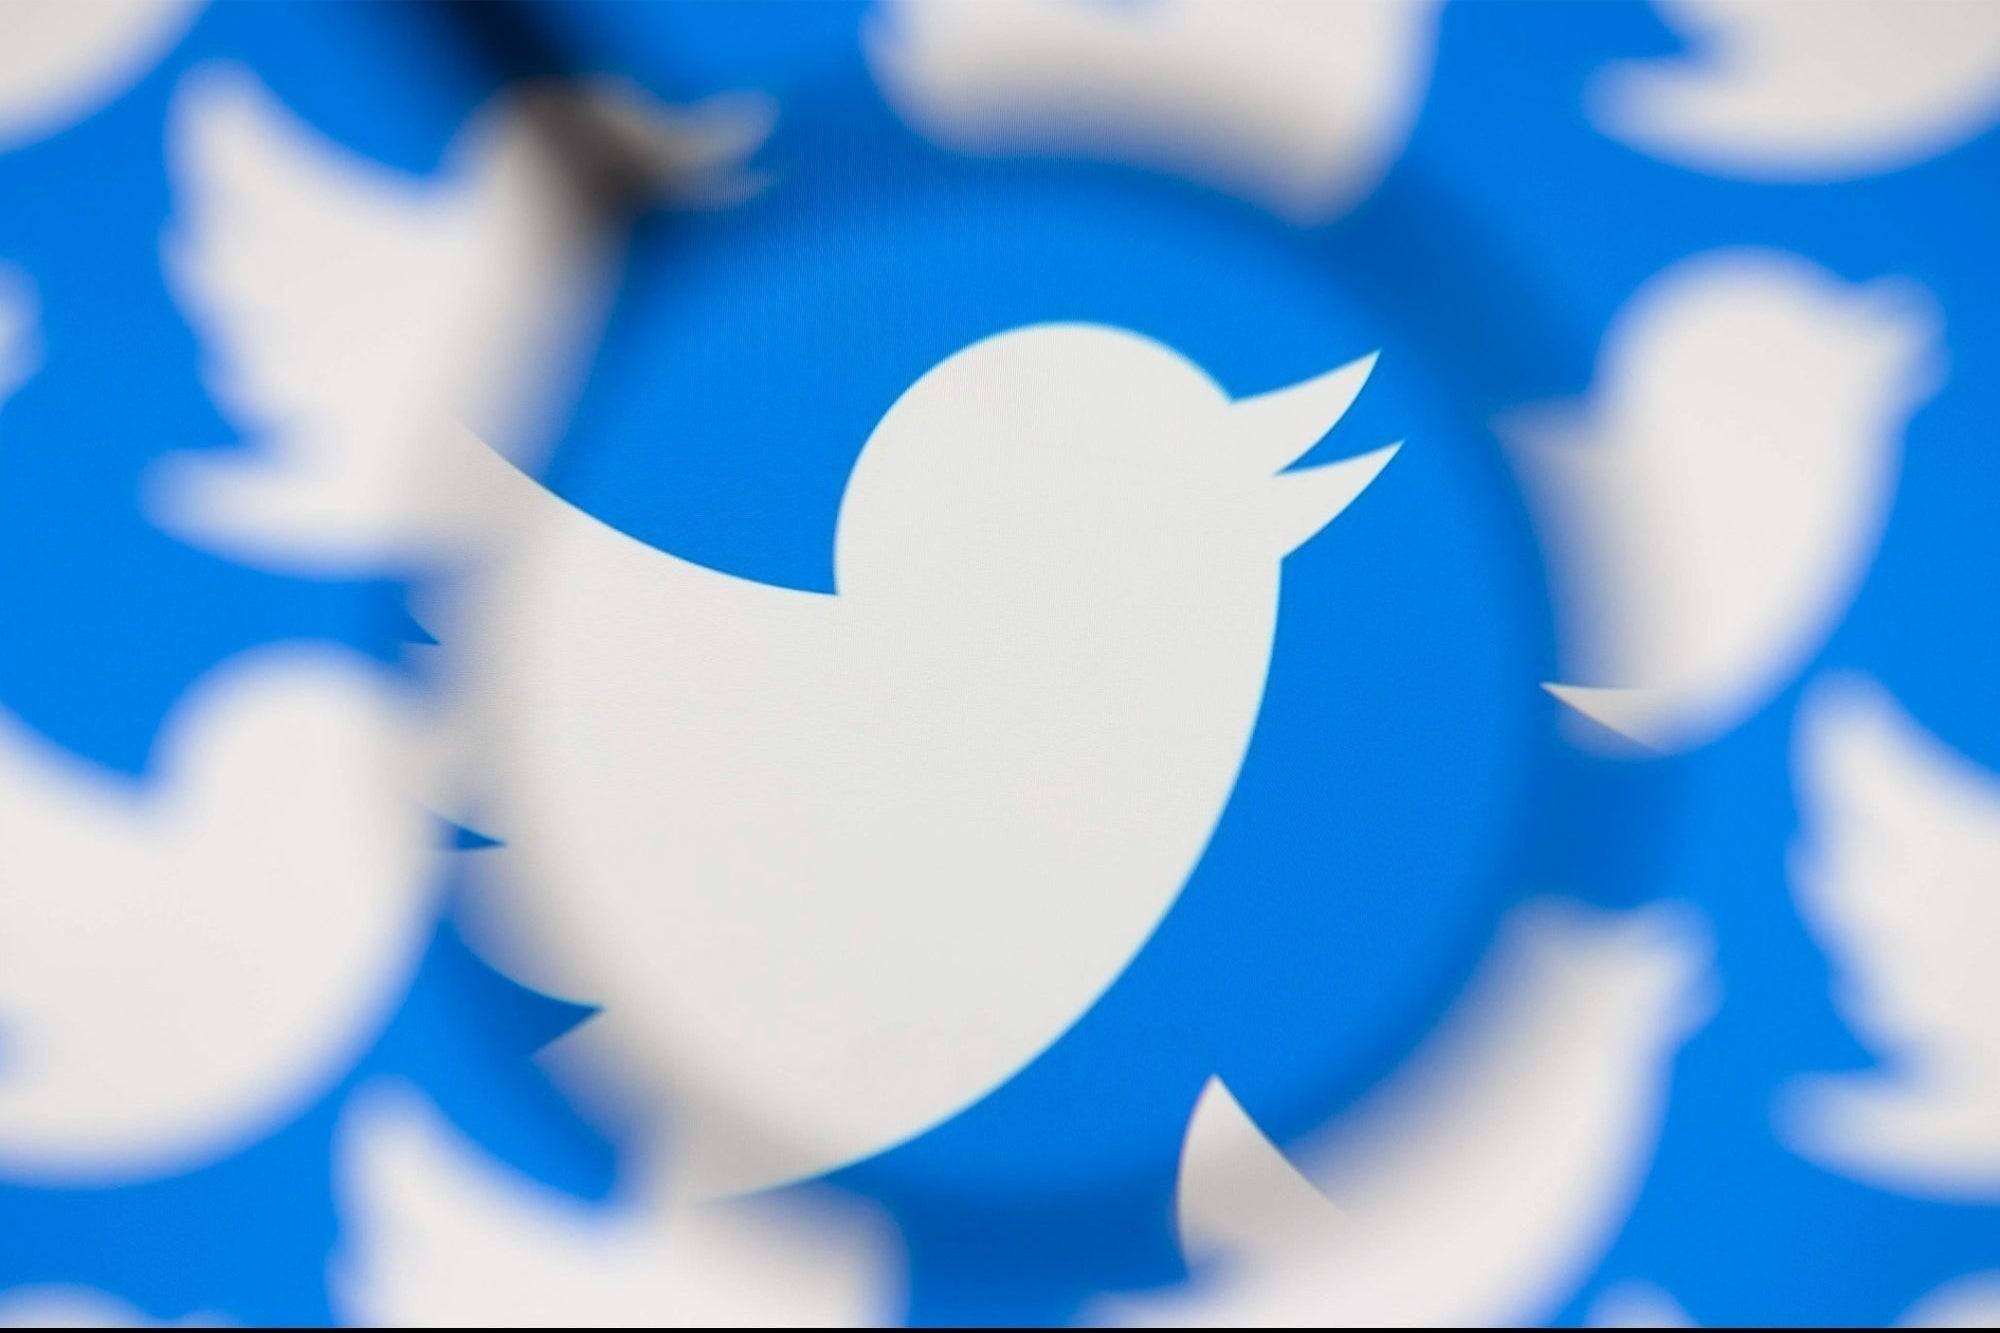 Twitter is launching a subscription service 'Twitter blue' that will cost $2,99